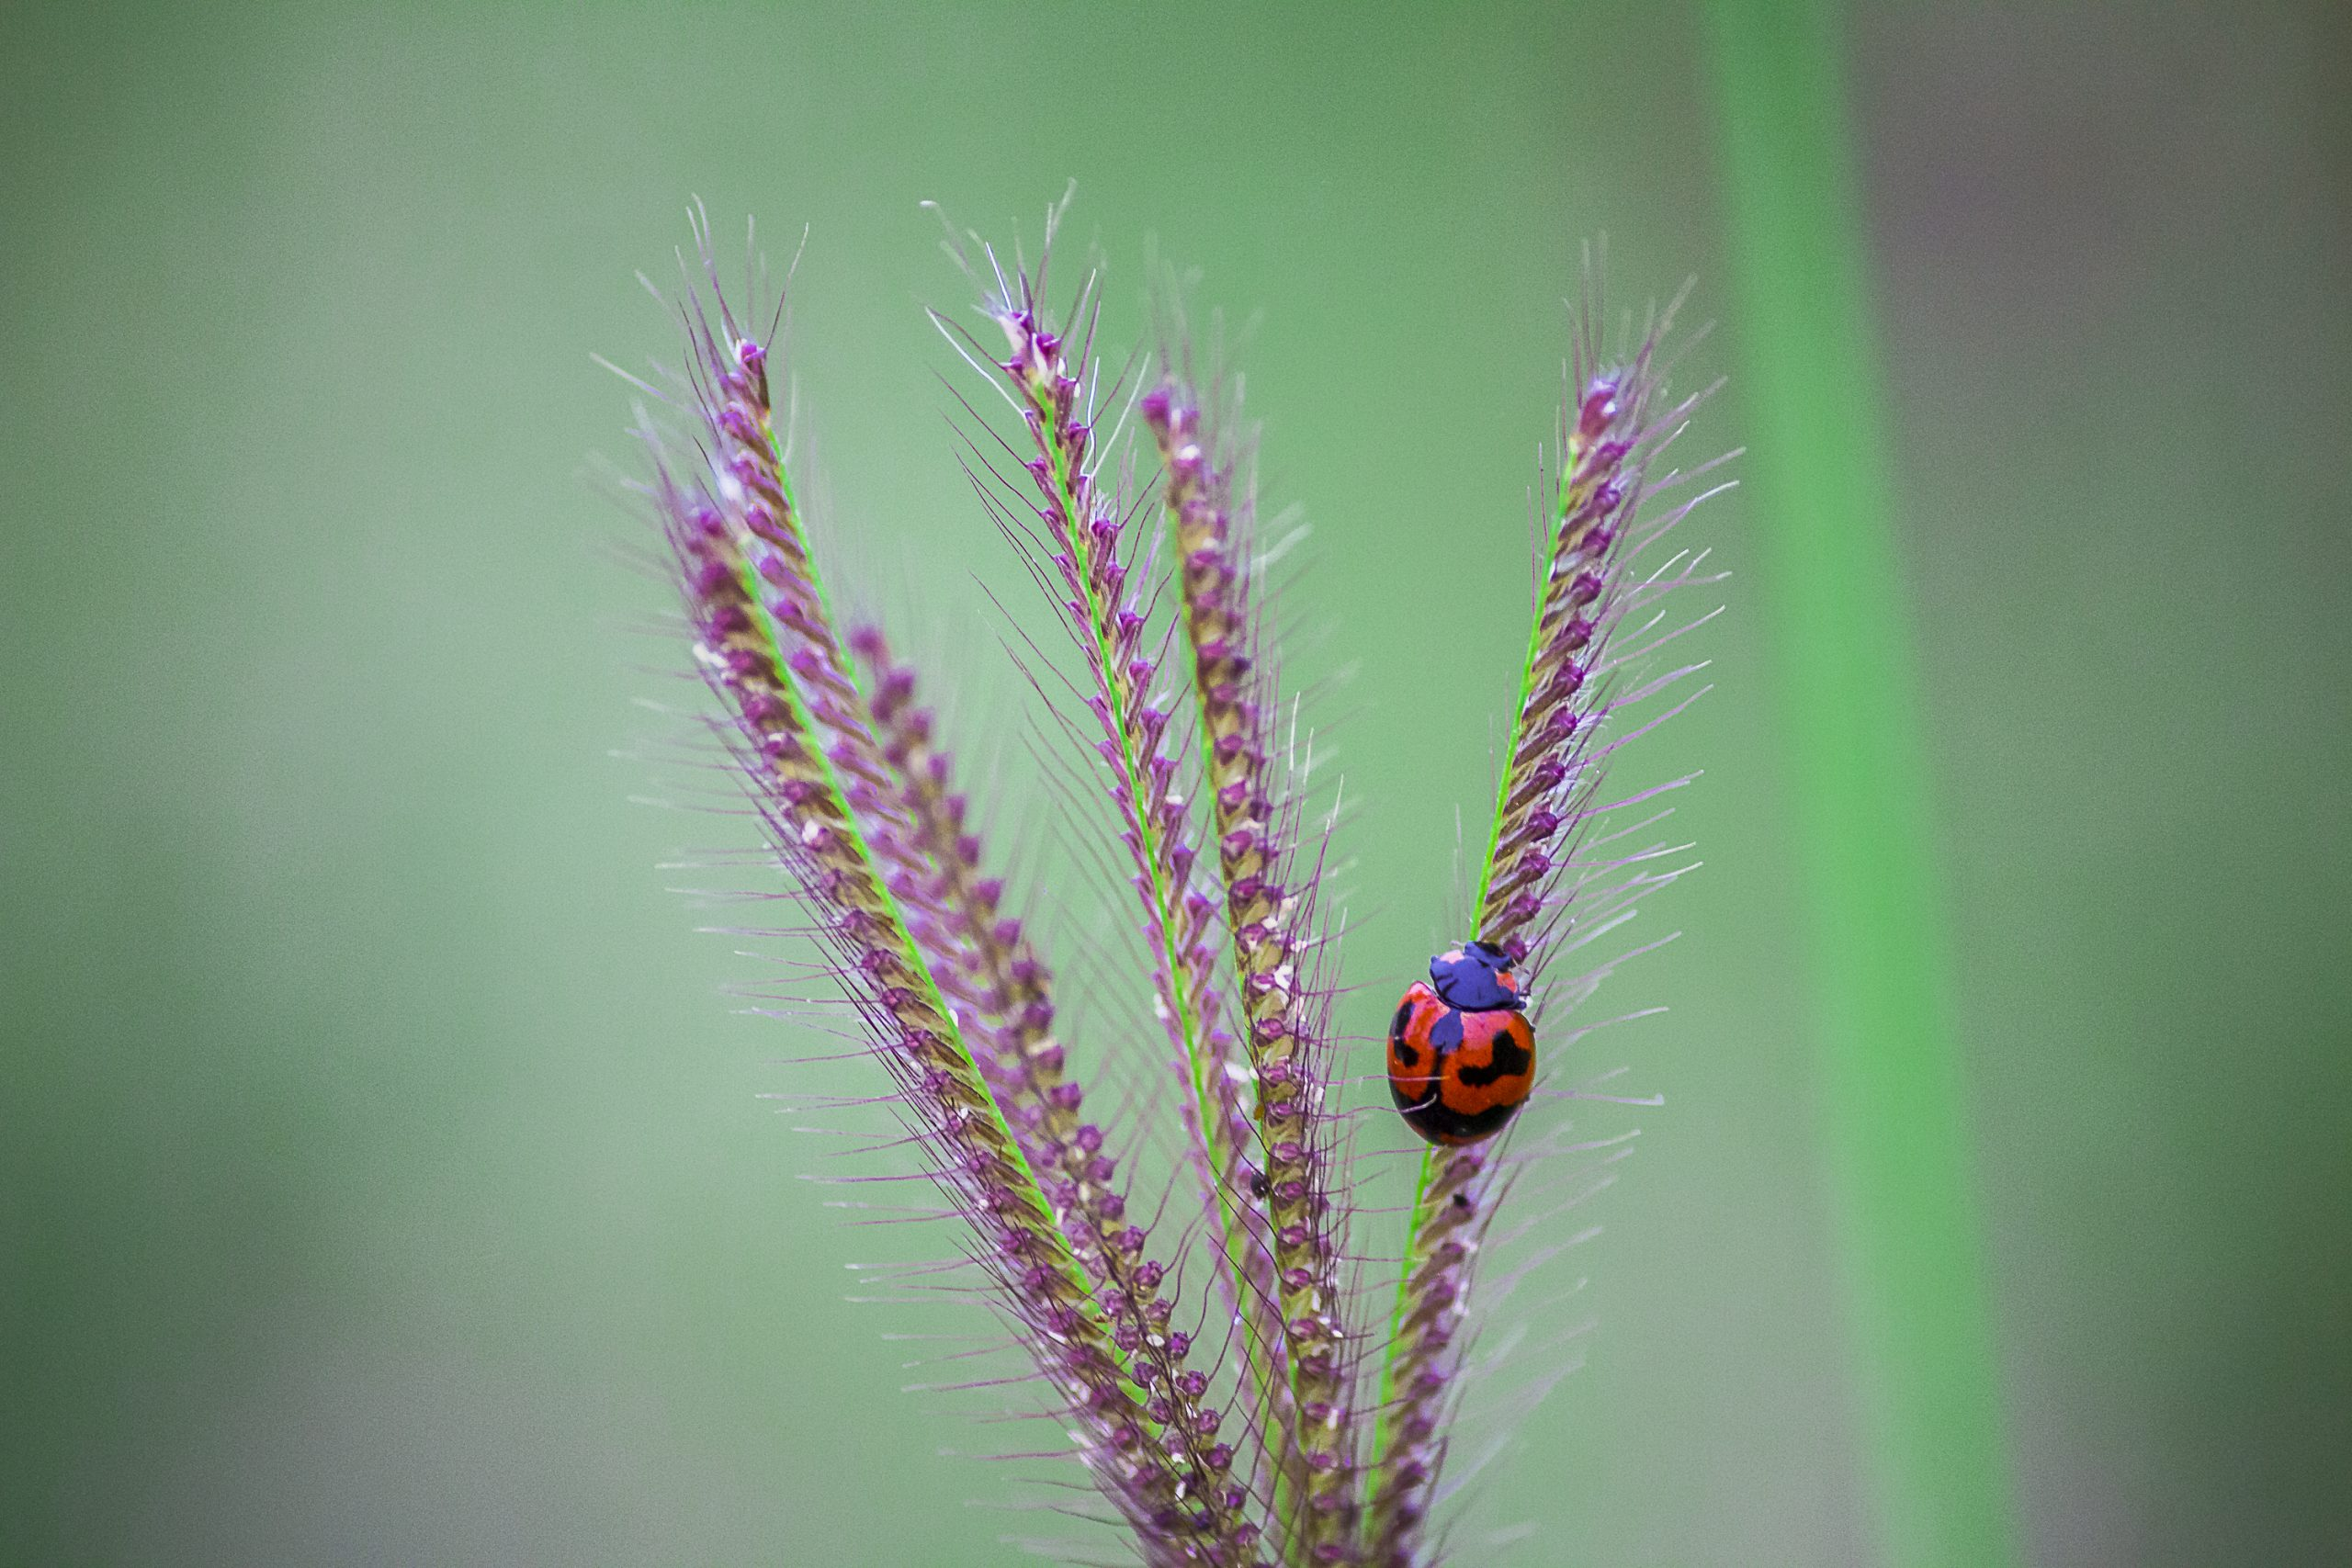 A lady bug on a plant